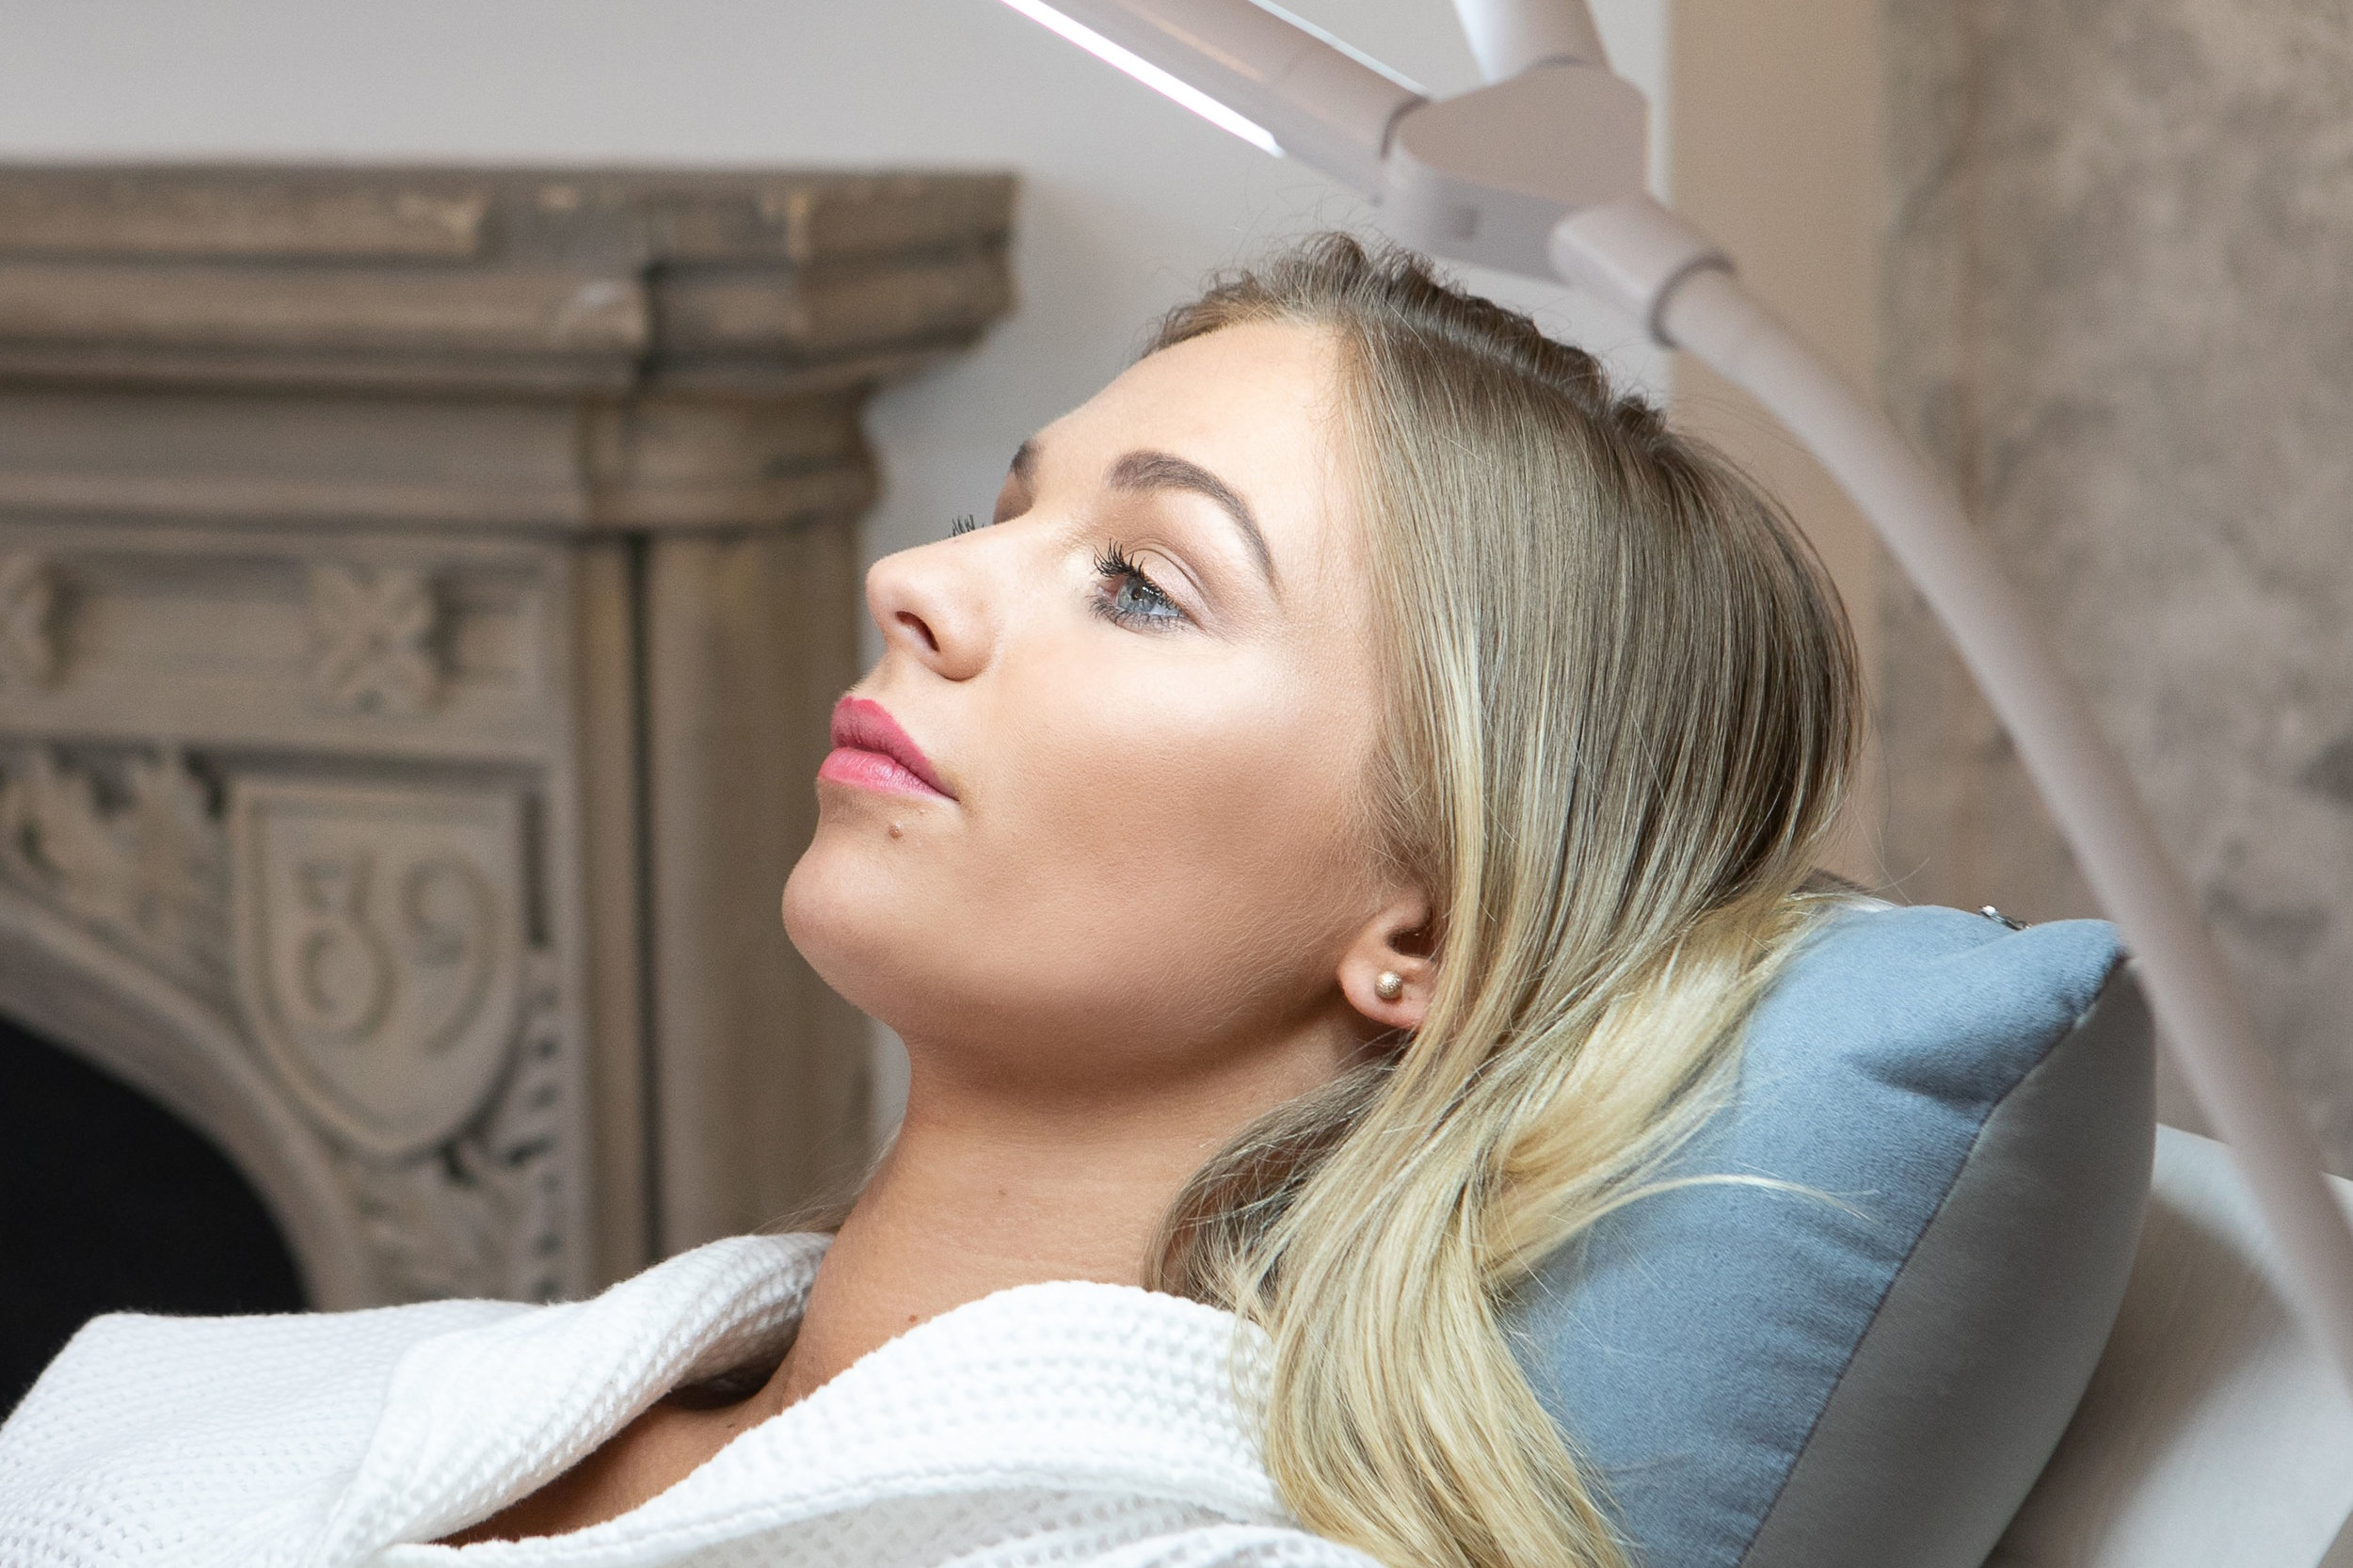 key treatment areas - The Plasma Pen can tighten skin in the upper and lower lids, and provide soft facelifts and tummy lifts. It reduces wrinkles, age and sun spots, moles and scars. It can also remove small tattoos.